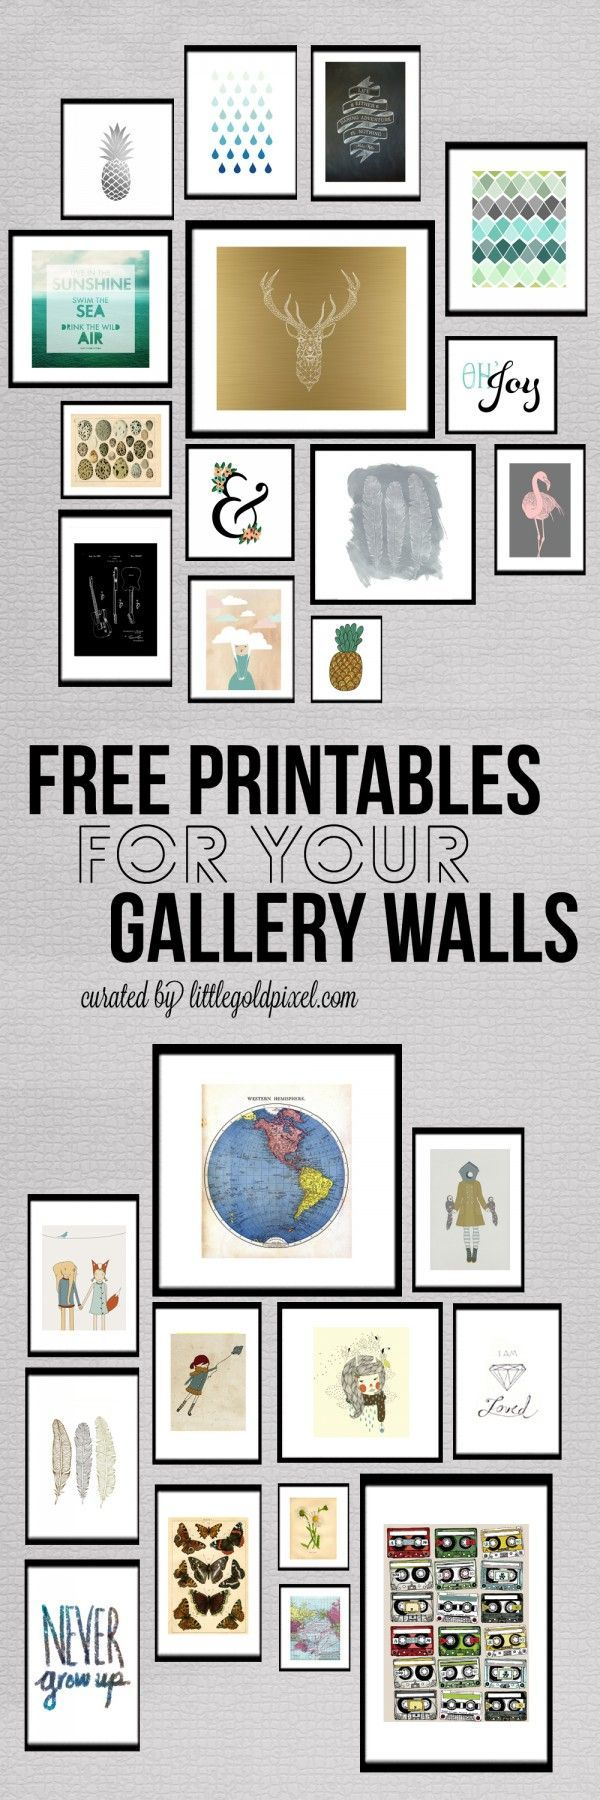 Easy wall art ideas gallery wall diy wall art and free printables